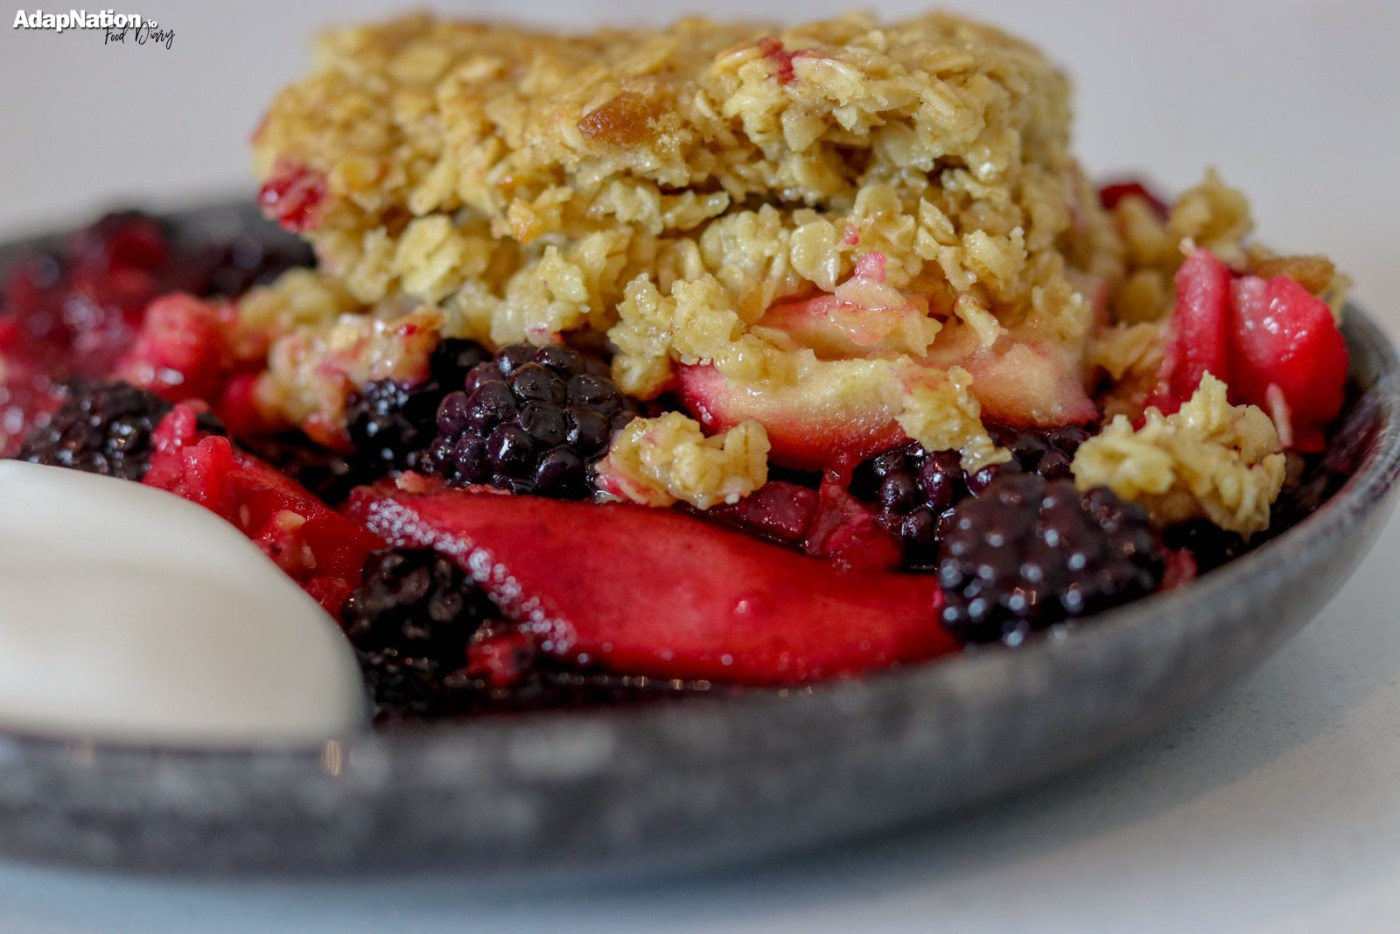 Home-made BlackBerry & Apple Crumble [Gluten & Lactose Free]